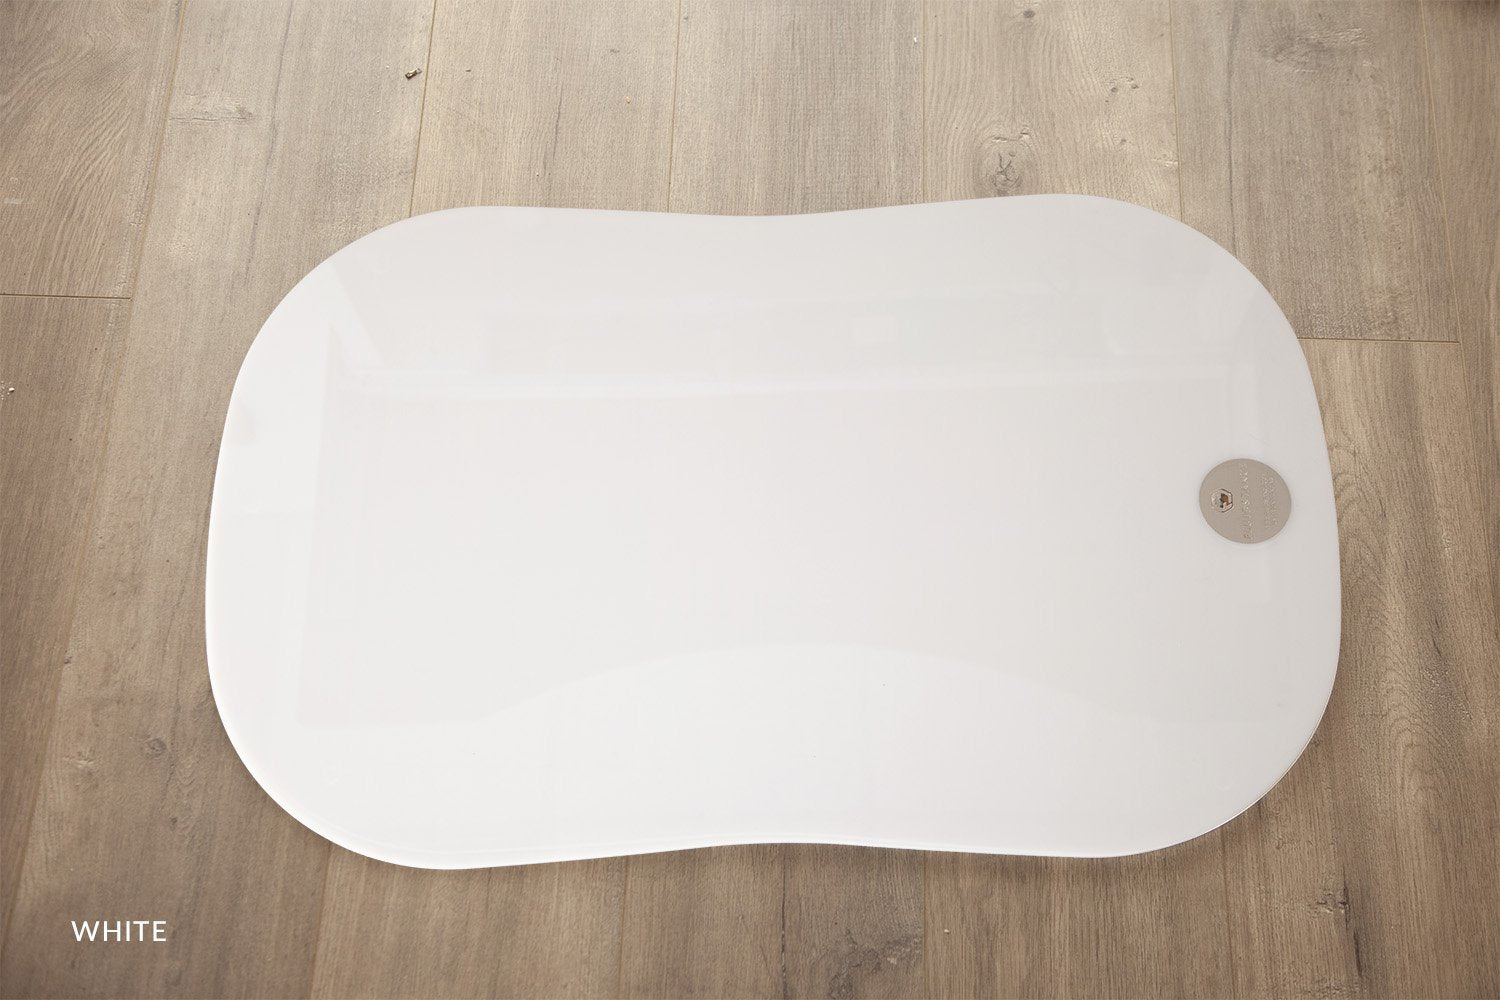 White base mat for FluidStance balance board